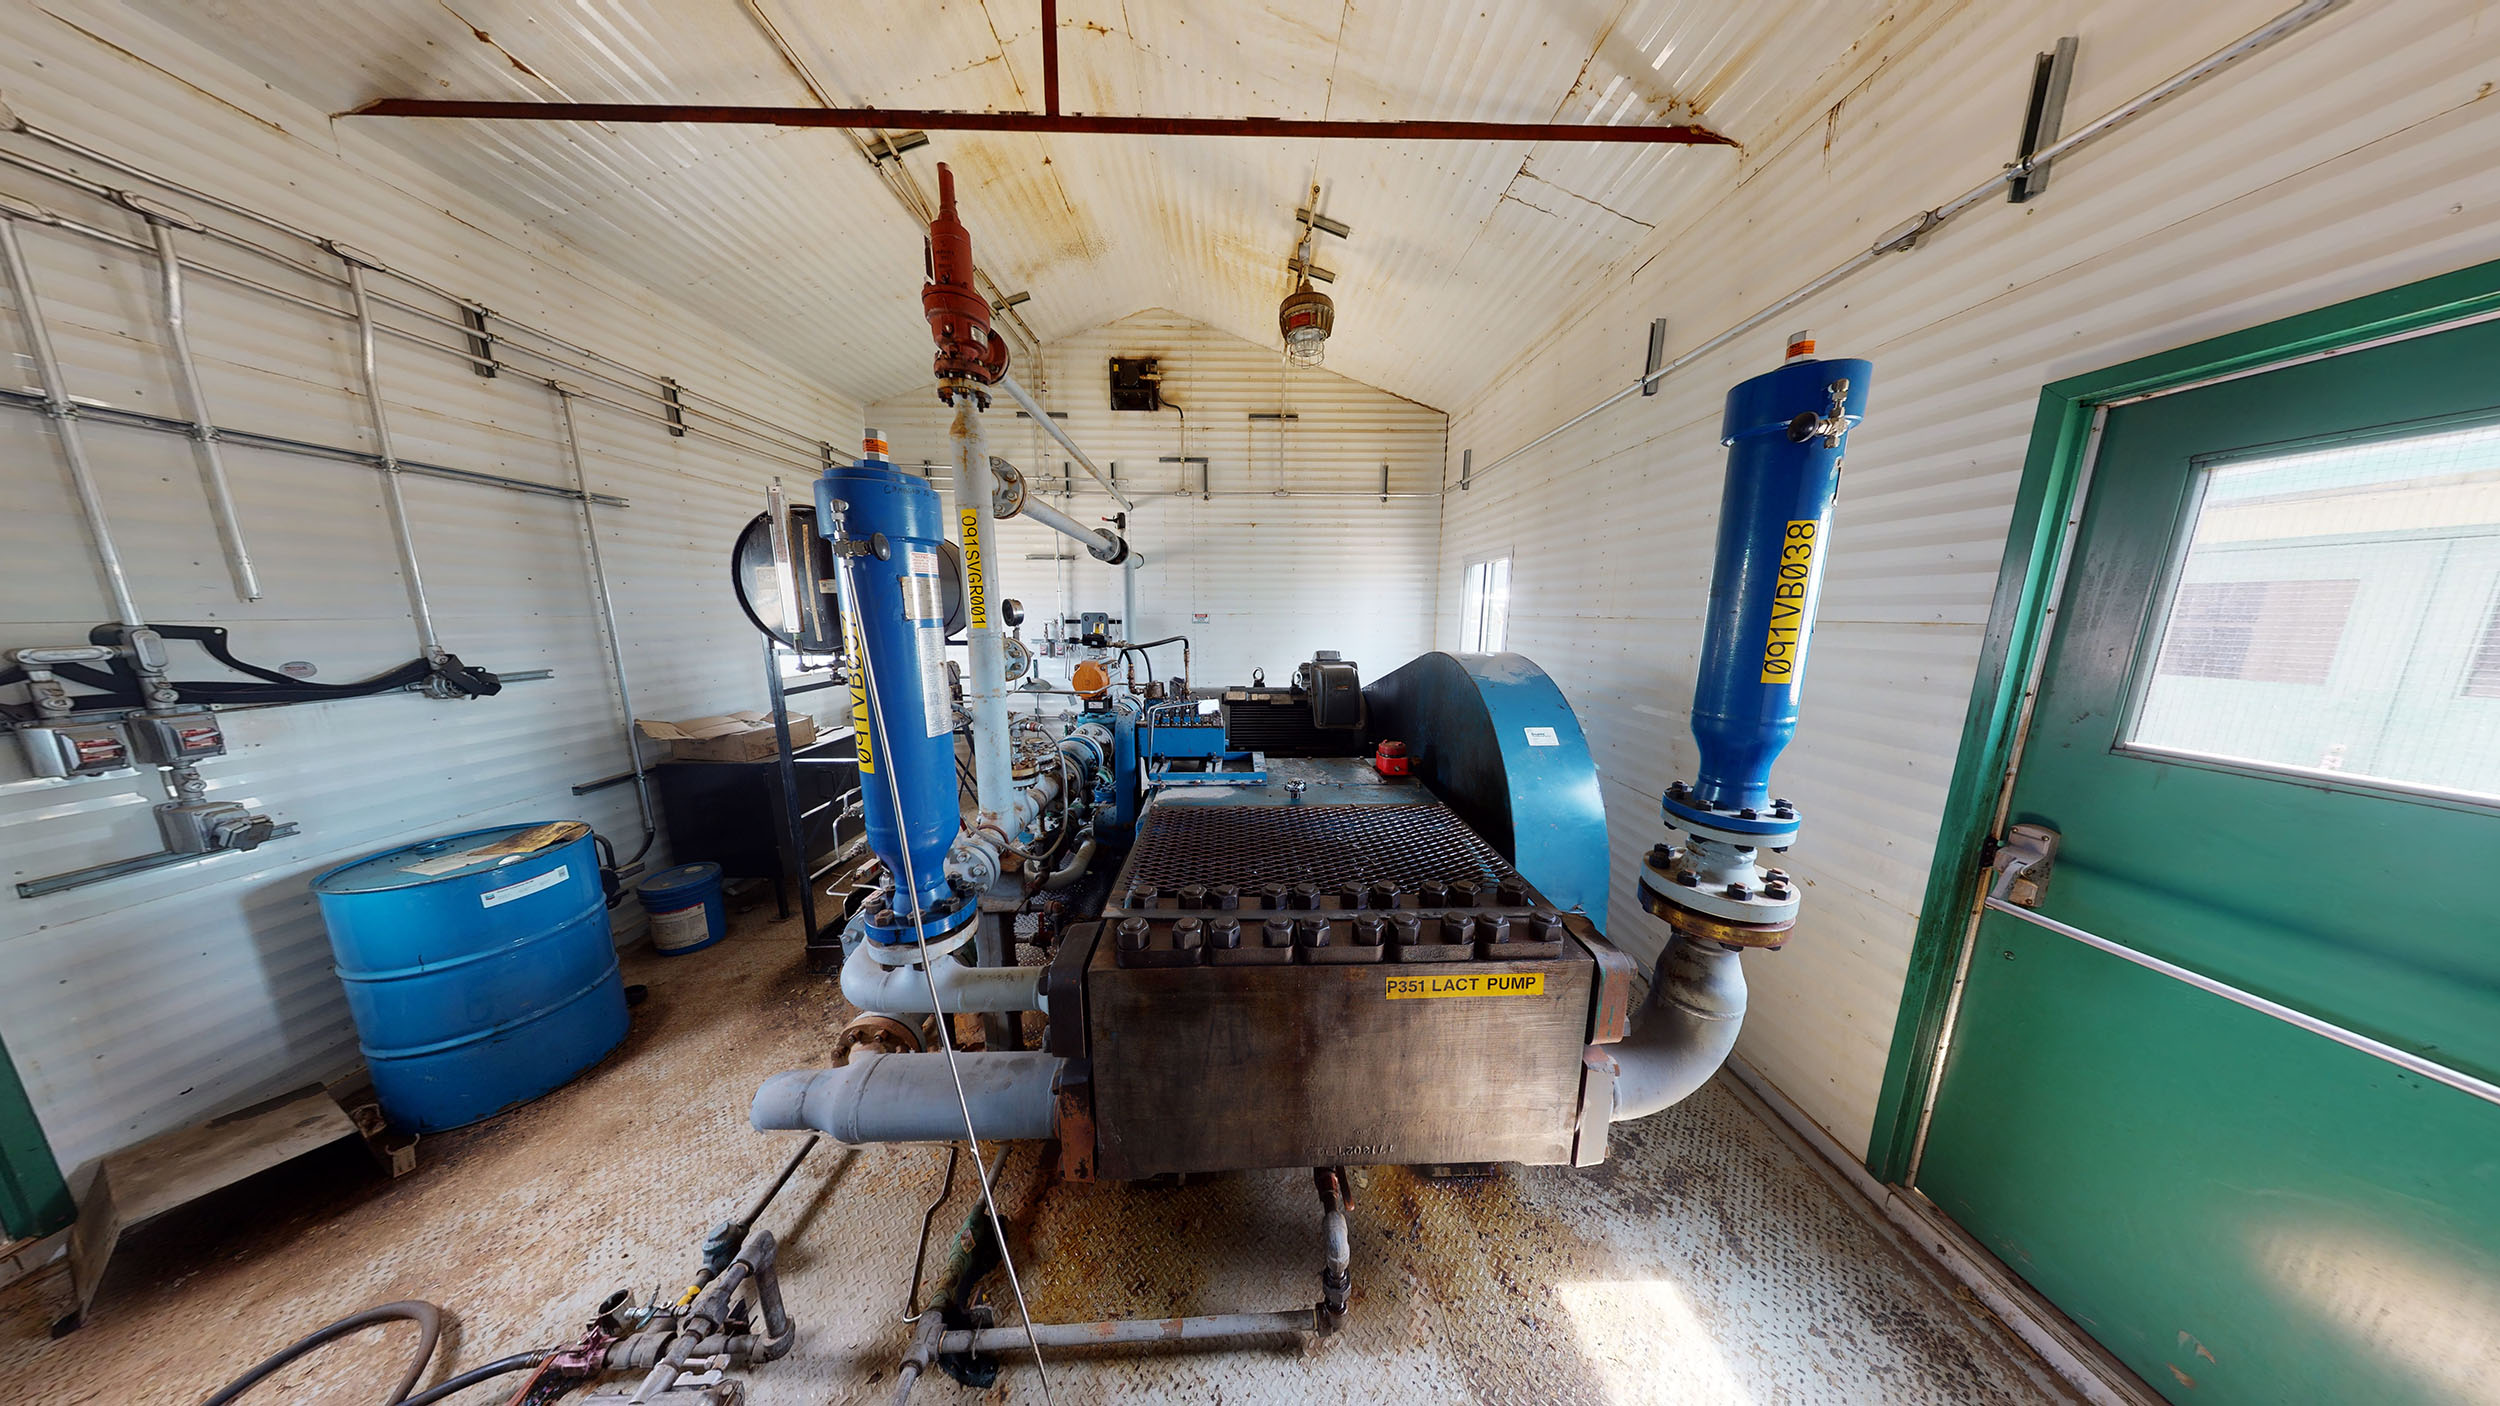 For sale –used / surplus –National Oilwell 300HP LACT Pump Package –oilfield / oil and gas / equipment in Alberta Canada –interior 5